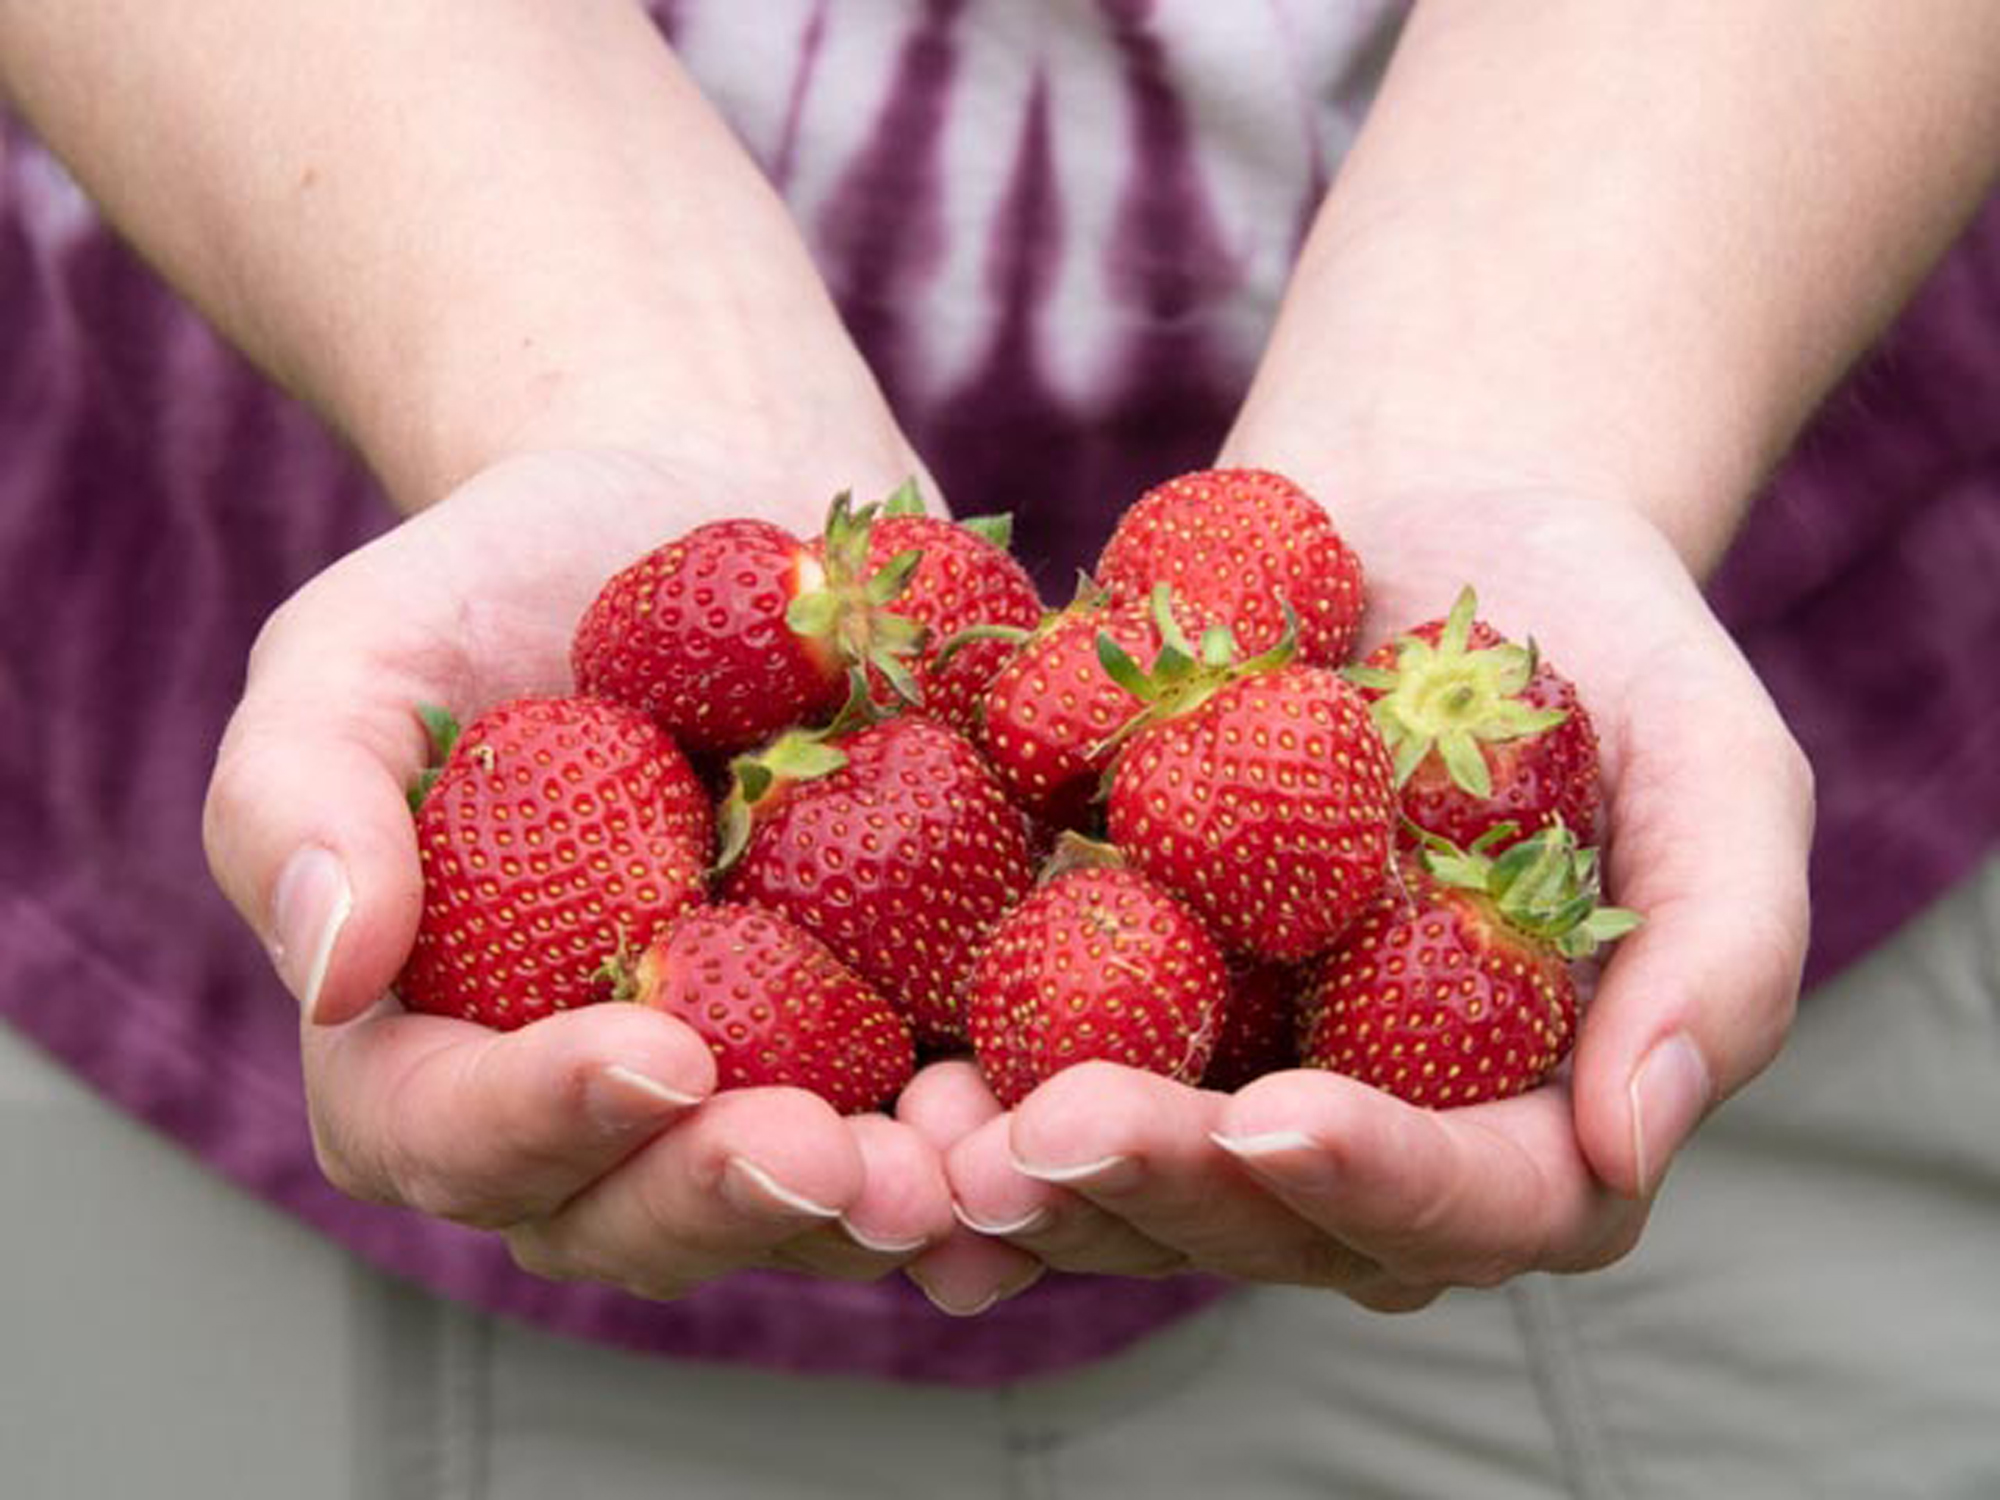 new-york-state-berry-growers-association-how-to-destem-a-strawberry.jpg